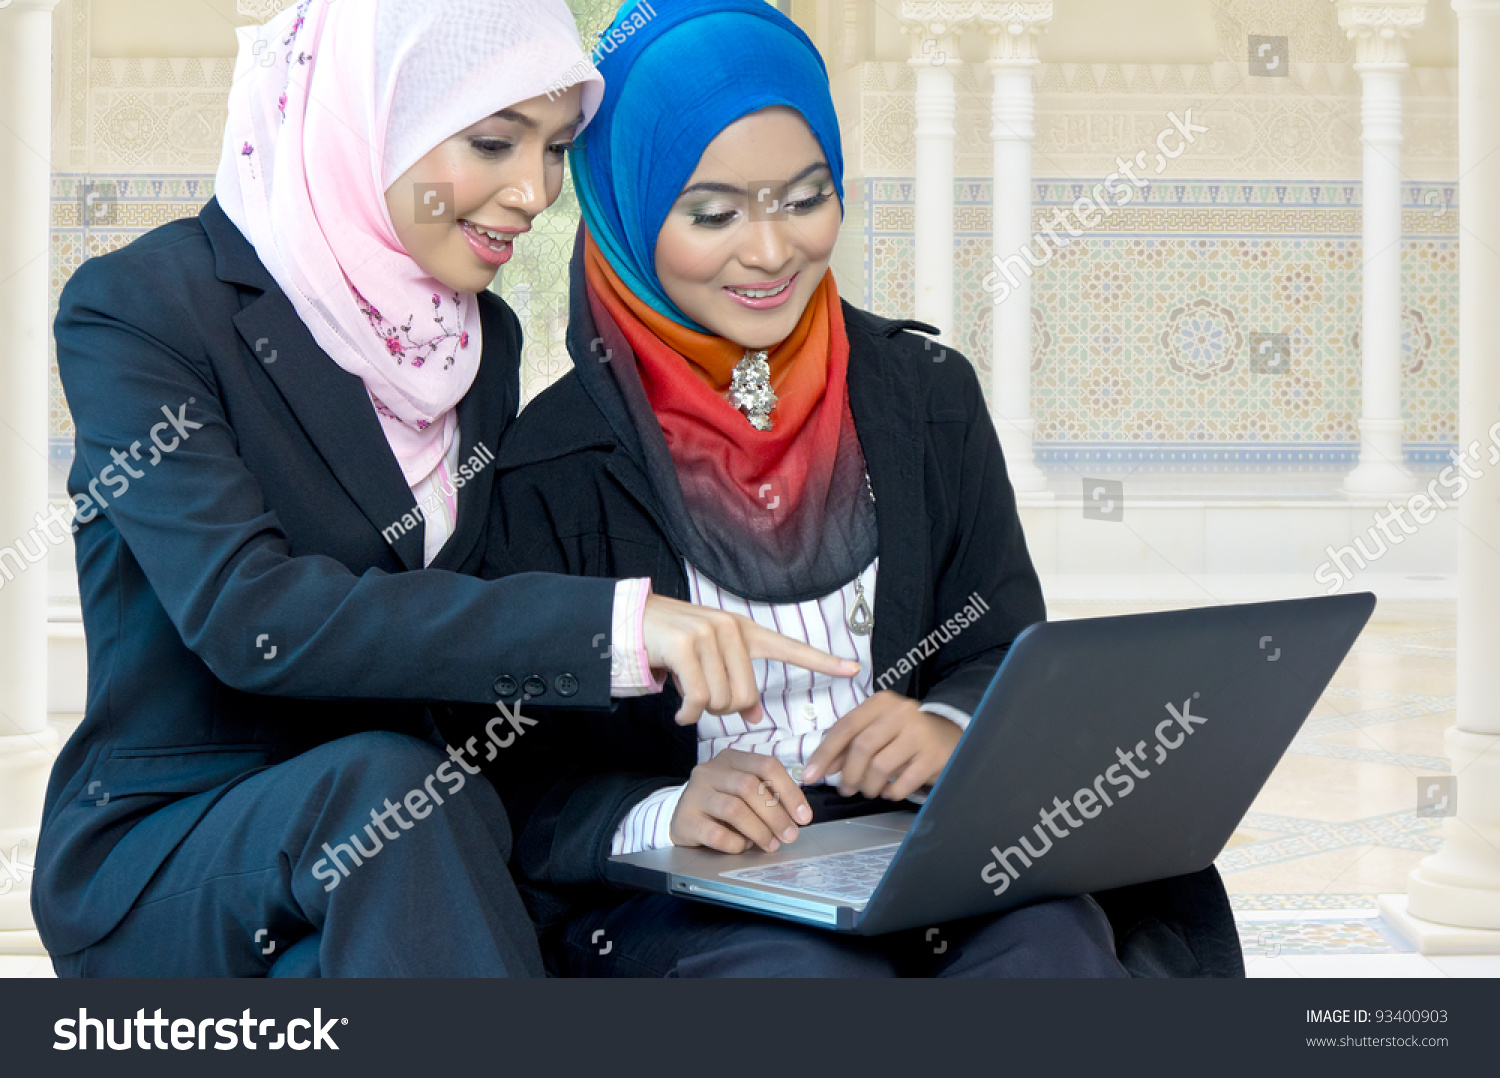 rover single muslim girls Single muslim women in usa - if you are really looking for relationship or special thing called love, then this site is for you, just sign up and start dating.